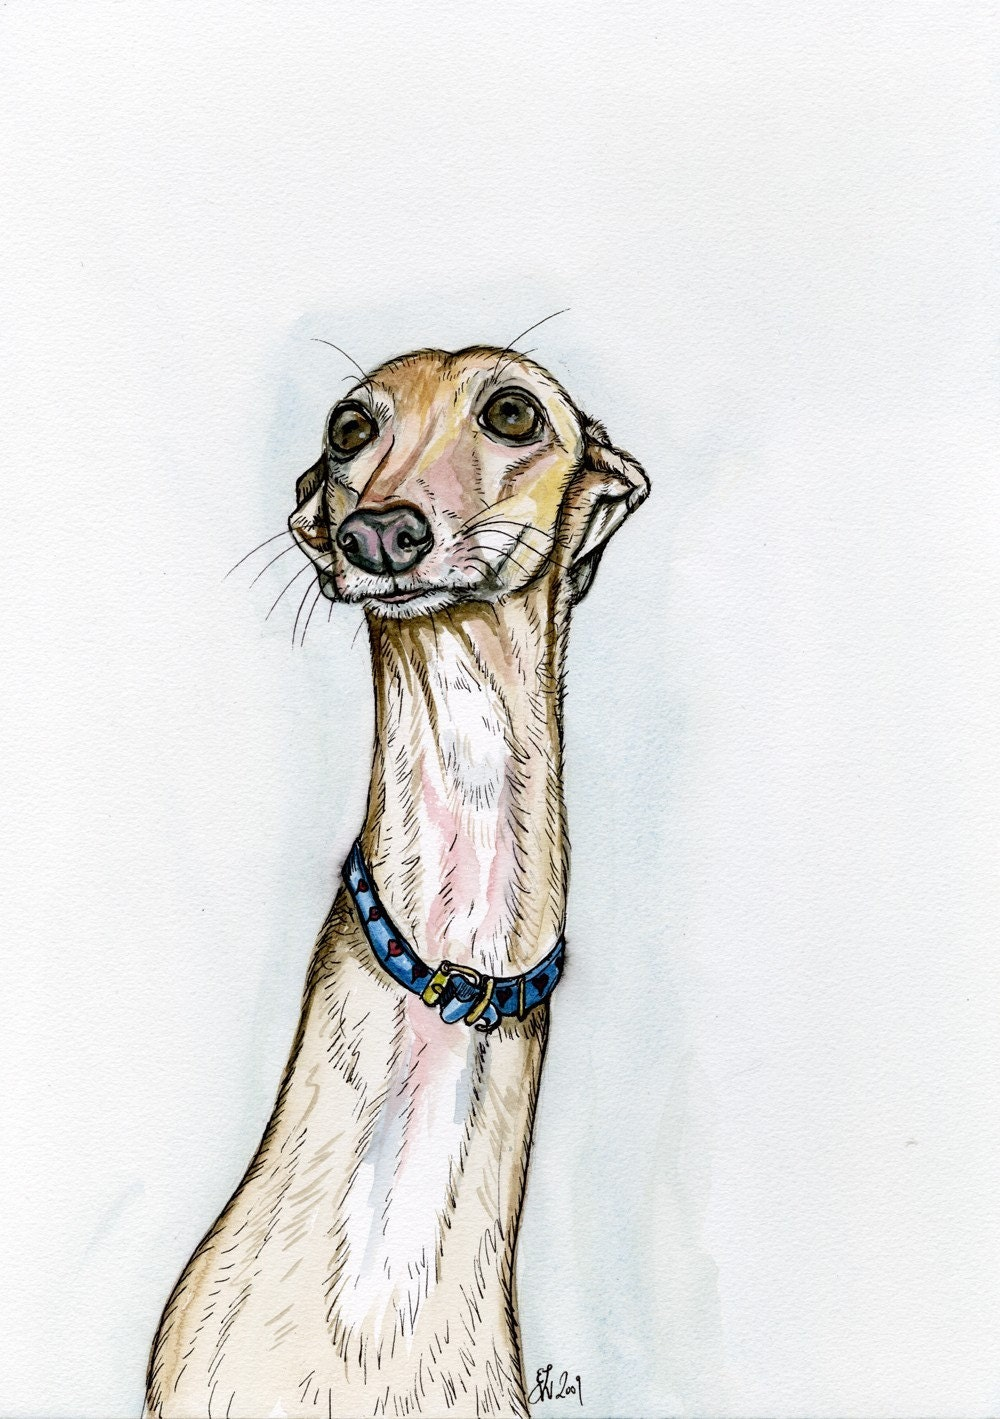 A LITTLE CONFUSED - ITALIAN GREYHOUND DOP PRINT - 5 X 7 INCH